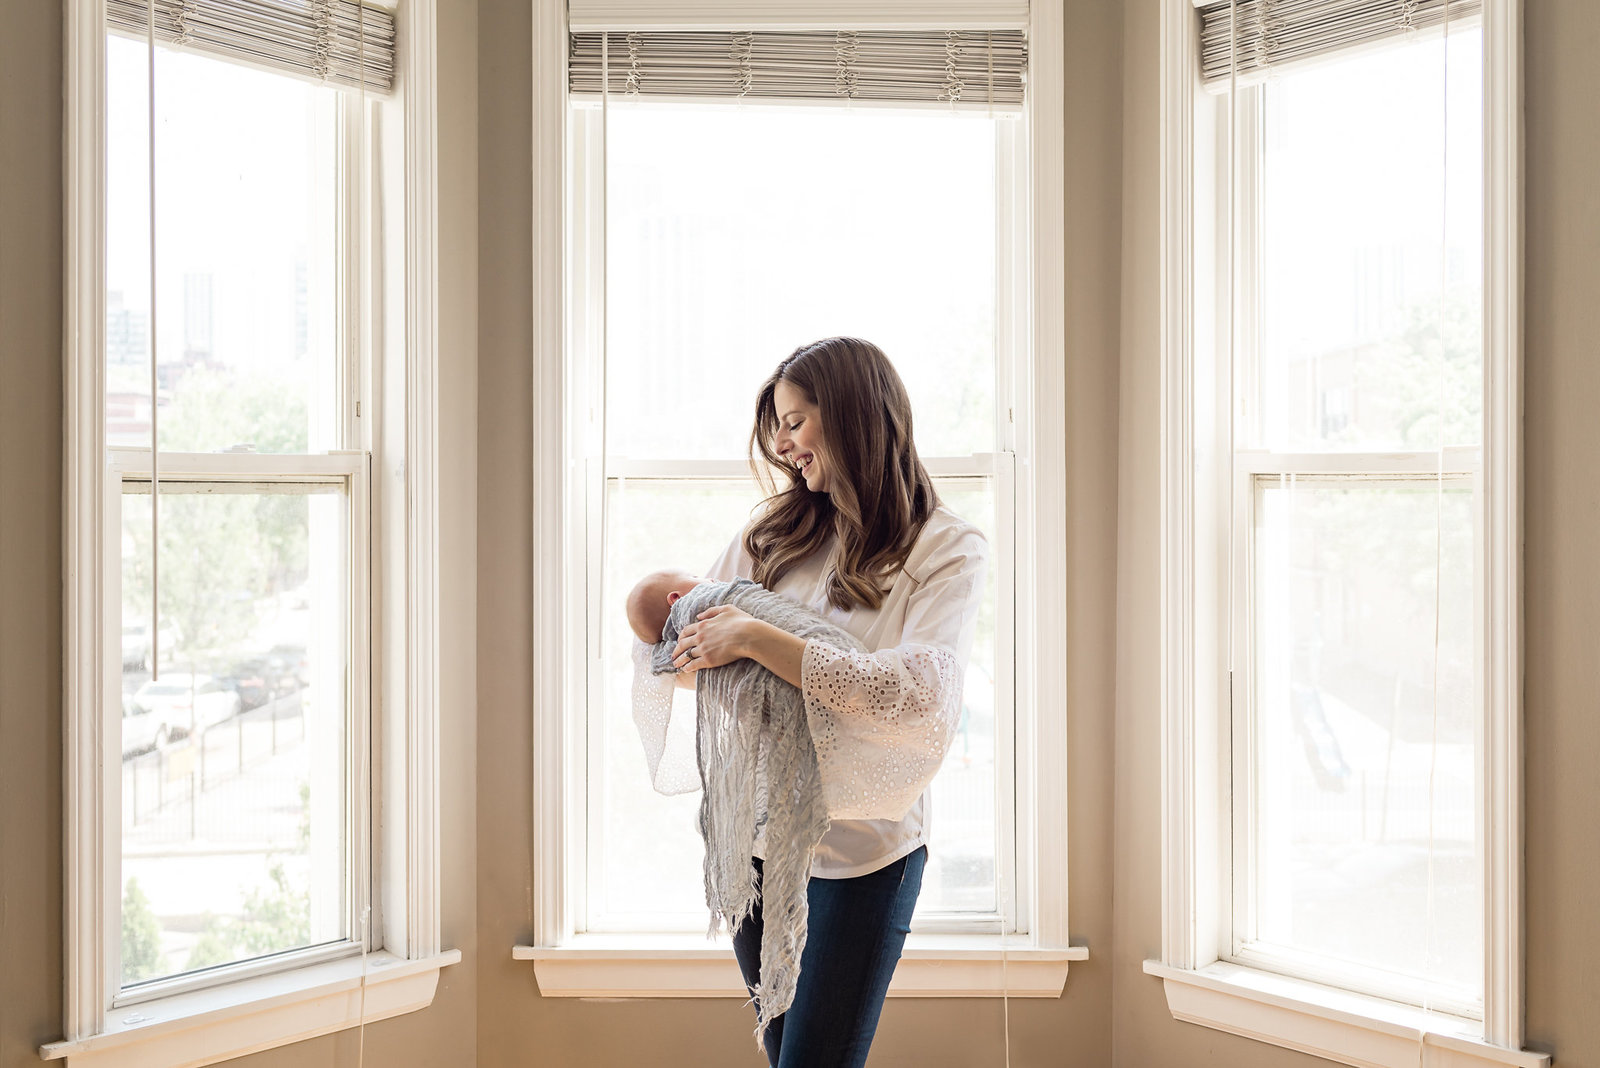 Newborn Pictures Chicago - Nicole Casaletto Photography (55)